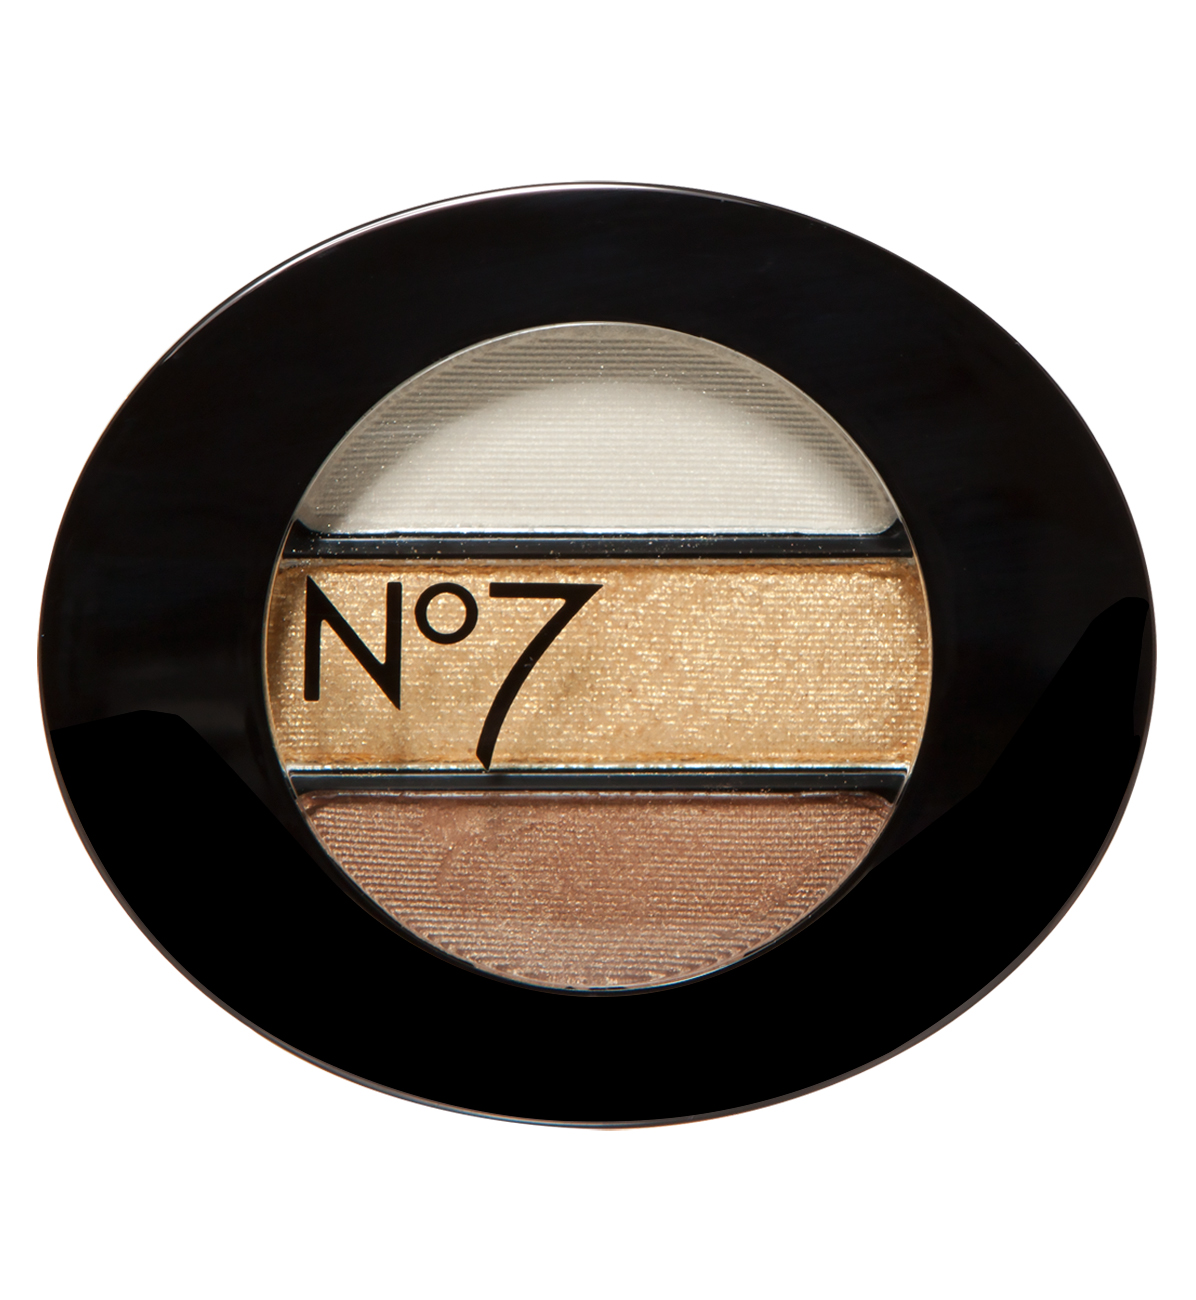 Trio of metallic gold eyeshadows from No7